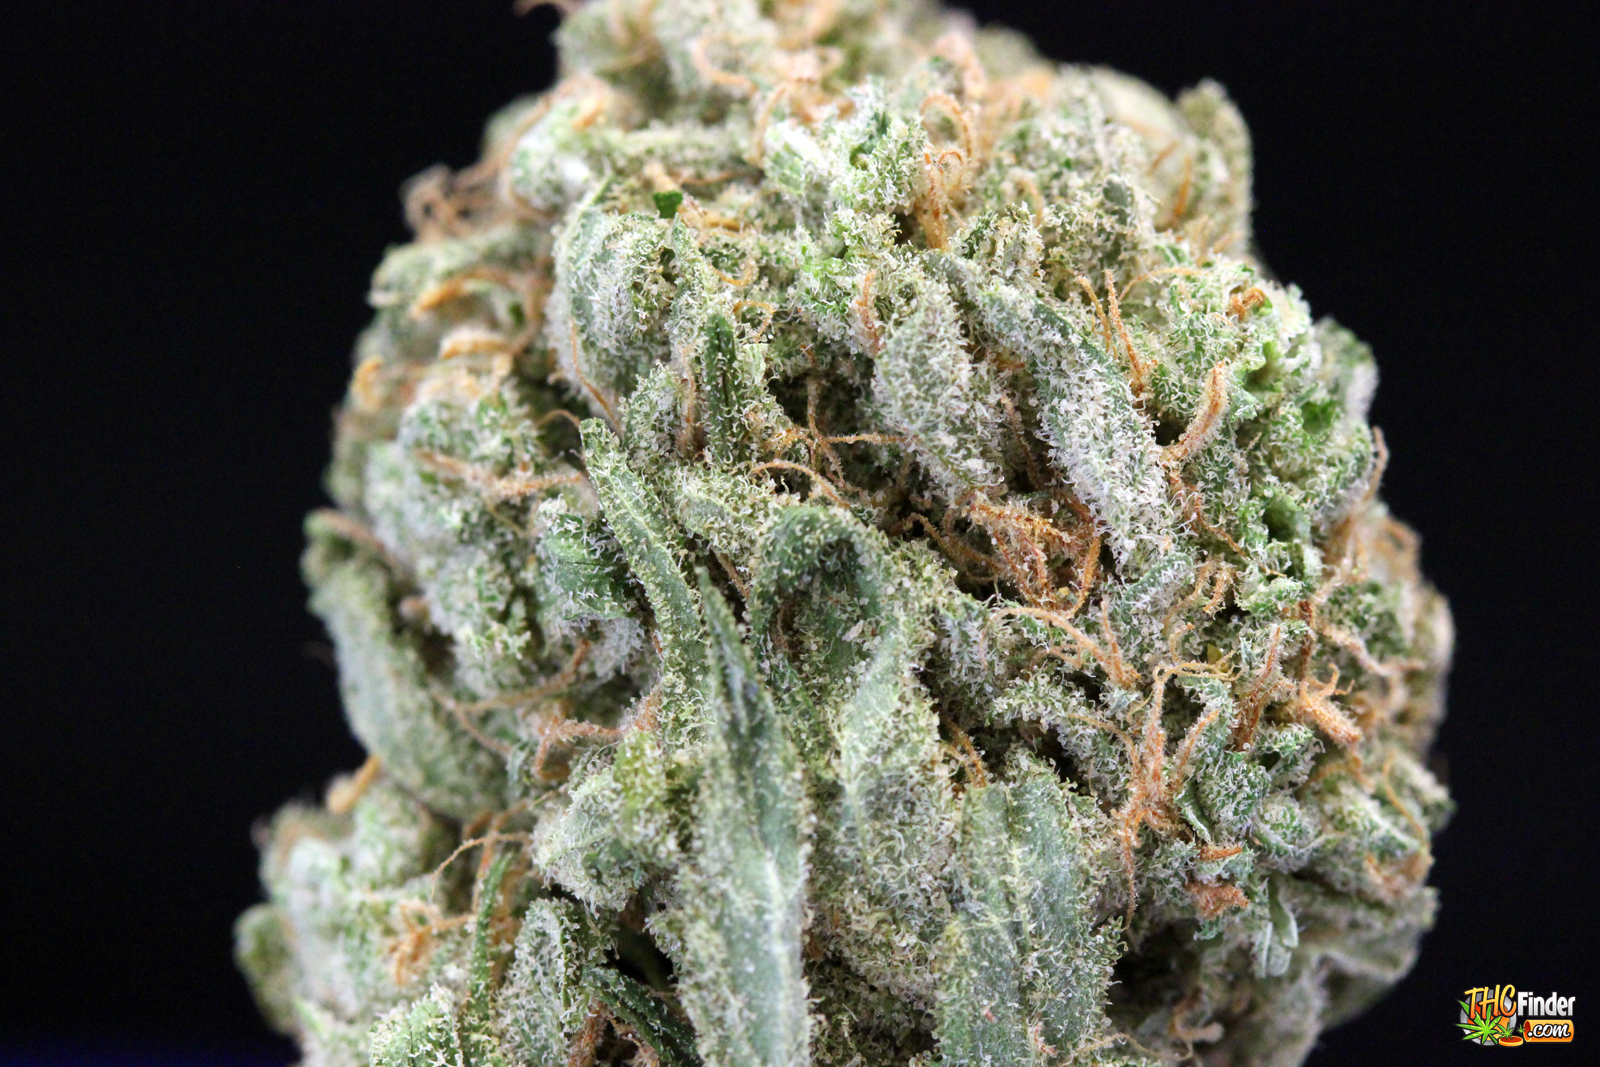 5 Best Marijuana Strains For Headache Relief Hawaiian-dream-closeup-shot-hawaiian-dream-medical-bud-thcfinder-2930